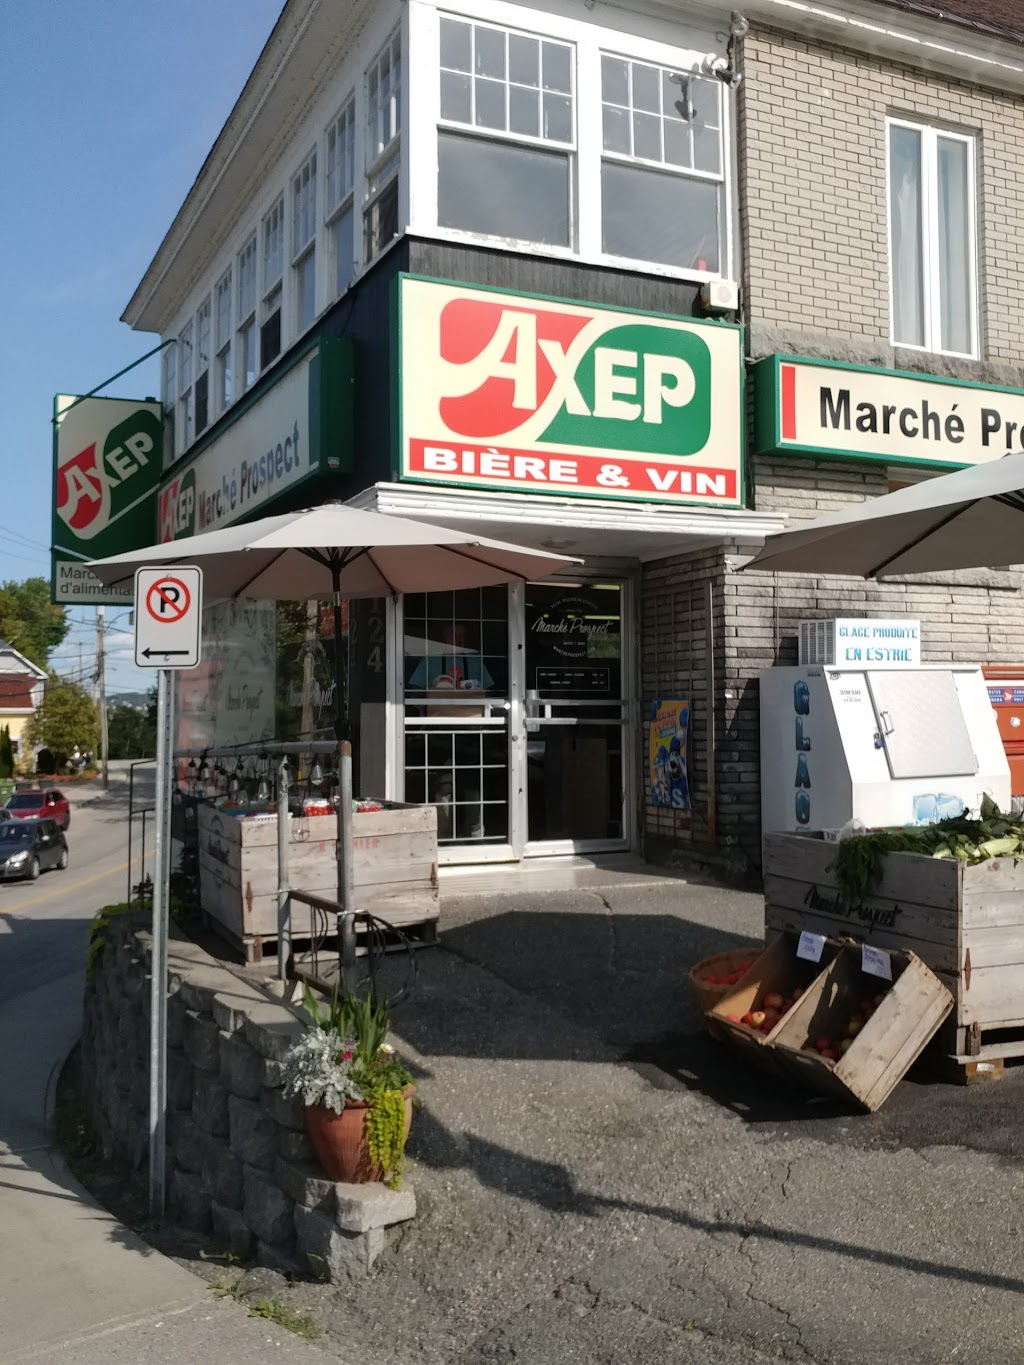 Marche Prospect - AXEP | store | 1124 Rue Prospect, Sherbrooke, QC J1H 6J7, Canada | 8195622609 OR +1 819-562-2609